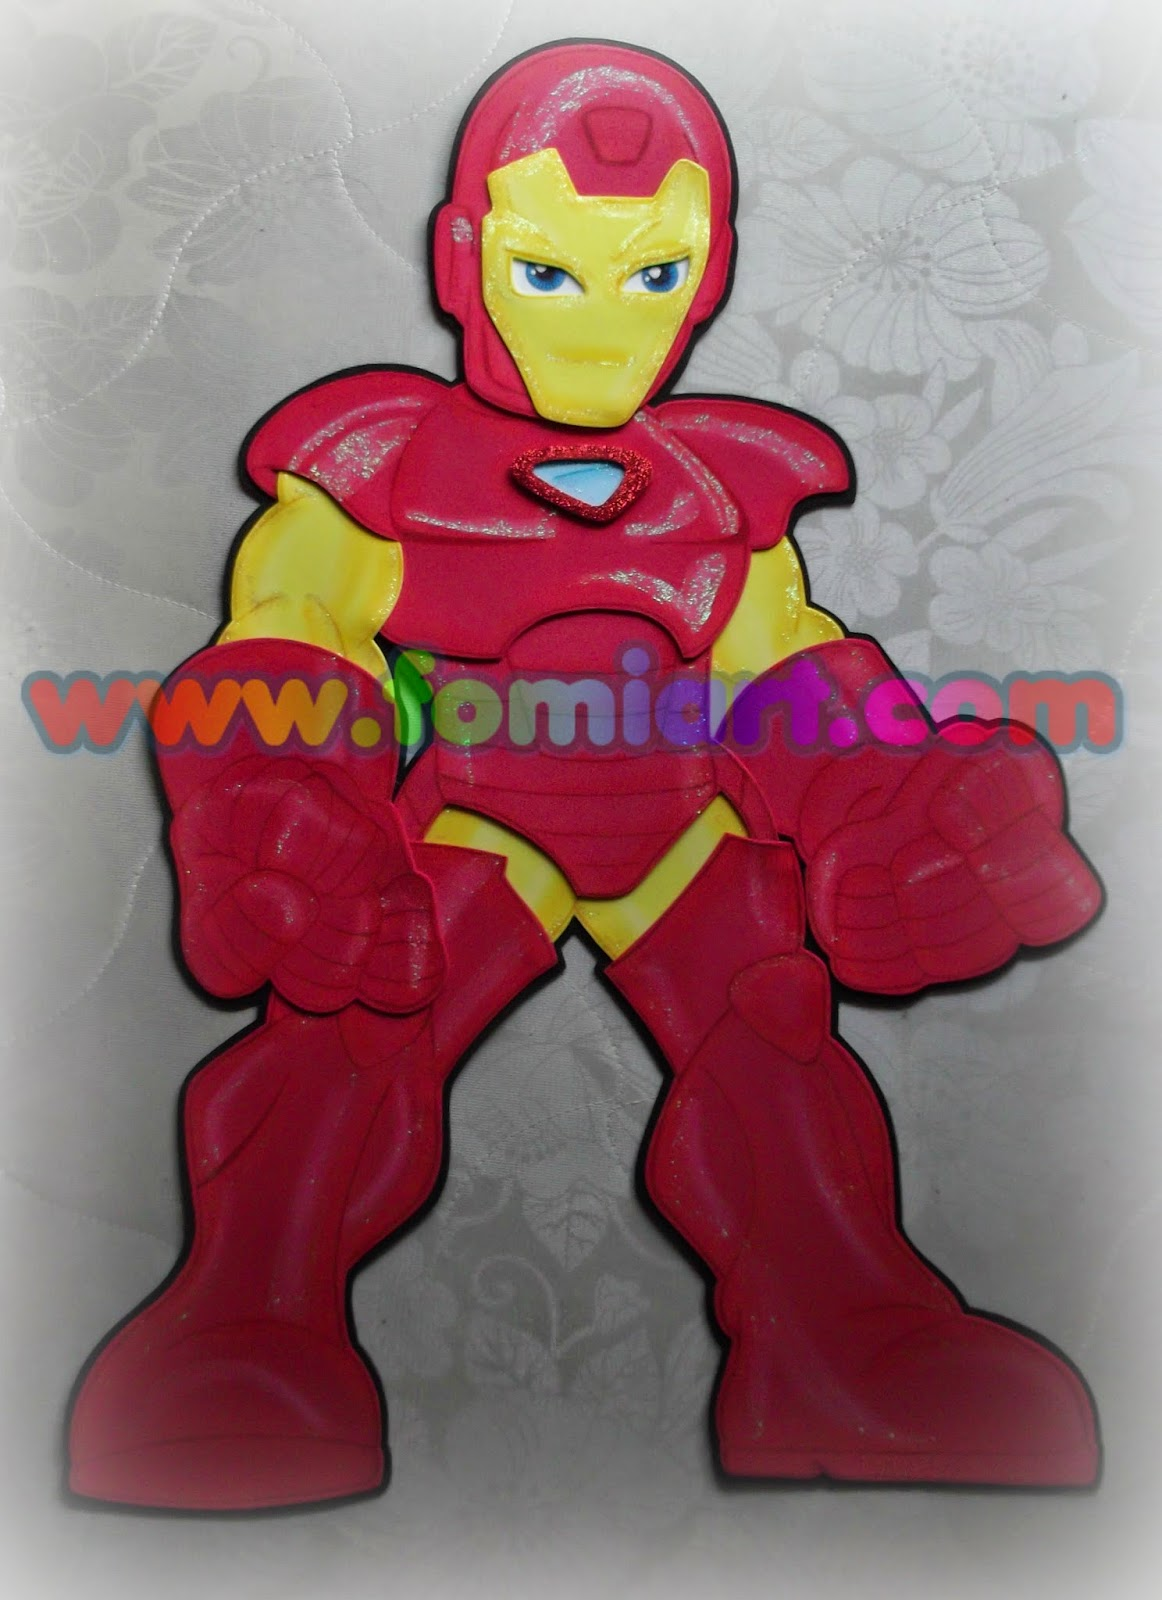 Decoracion en foamy de Iron Man